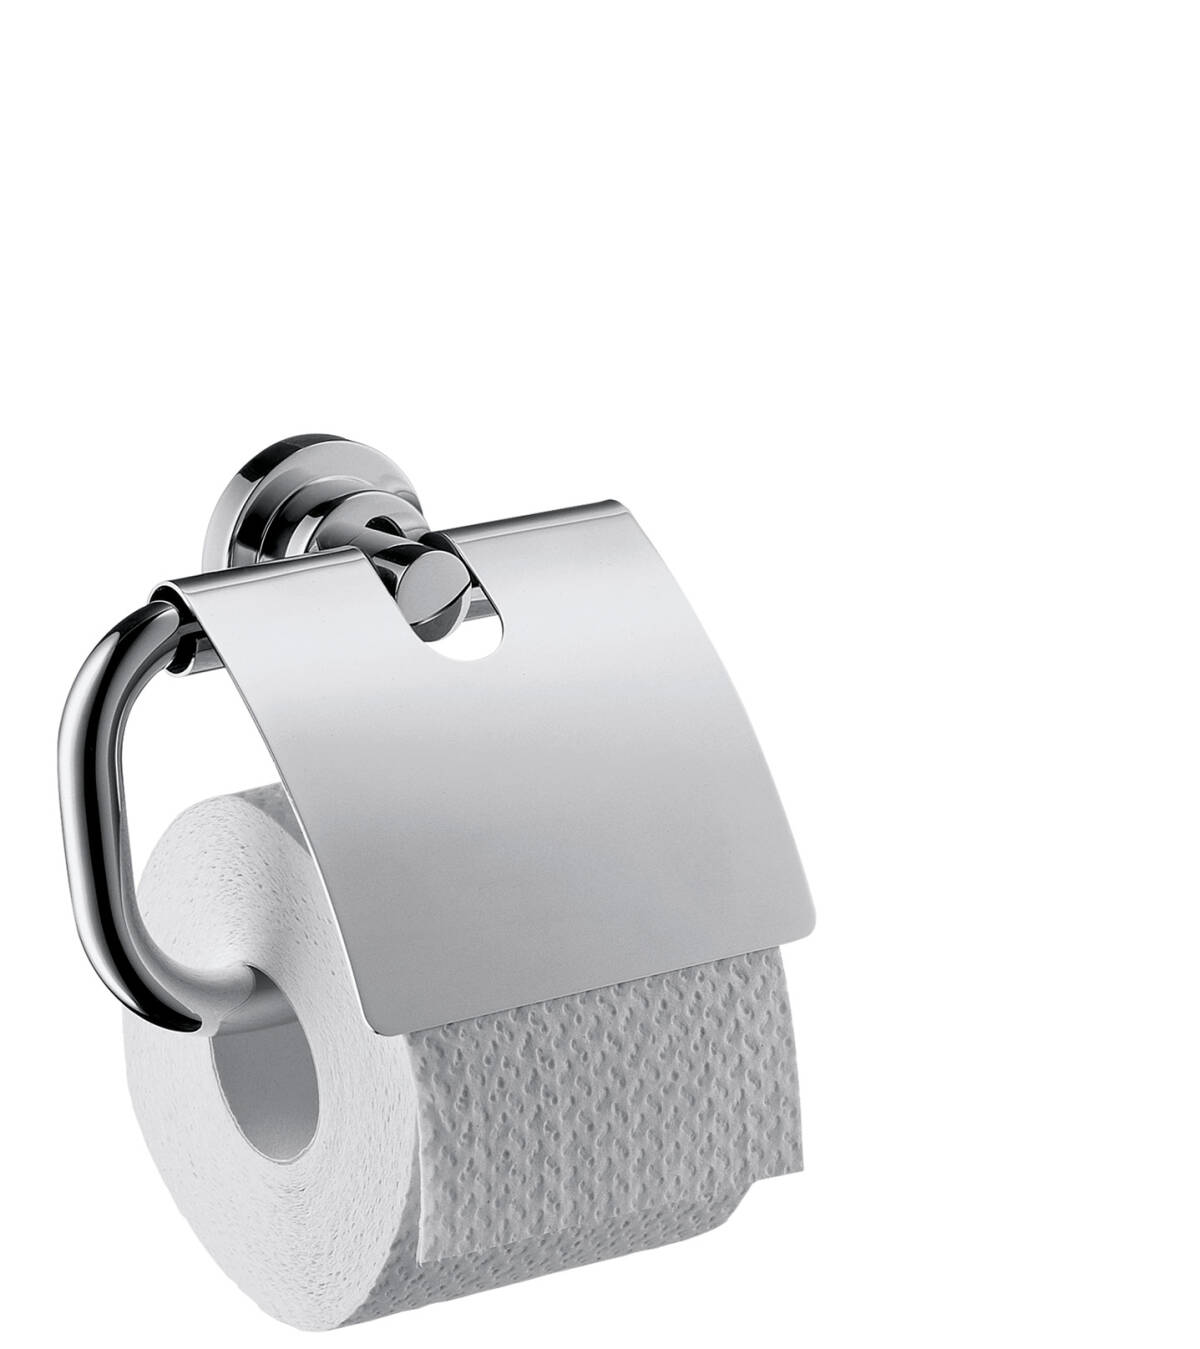 Roll holder, Chrome, 41738000